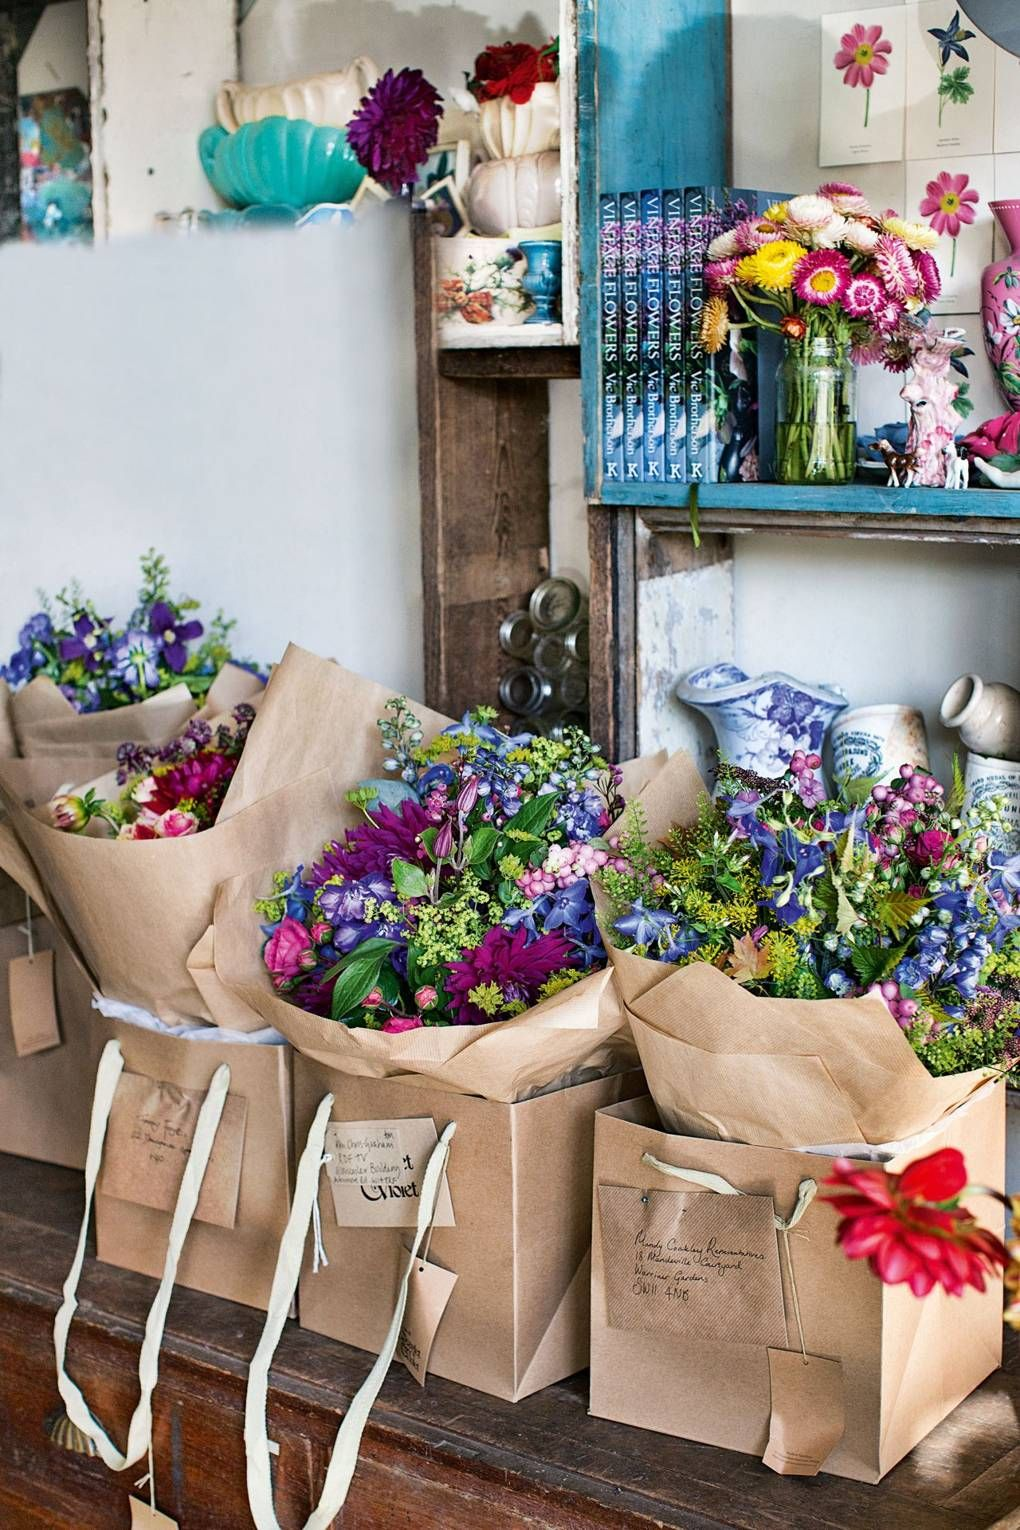 Roses are red, violets are blue Flower shop decor